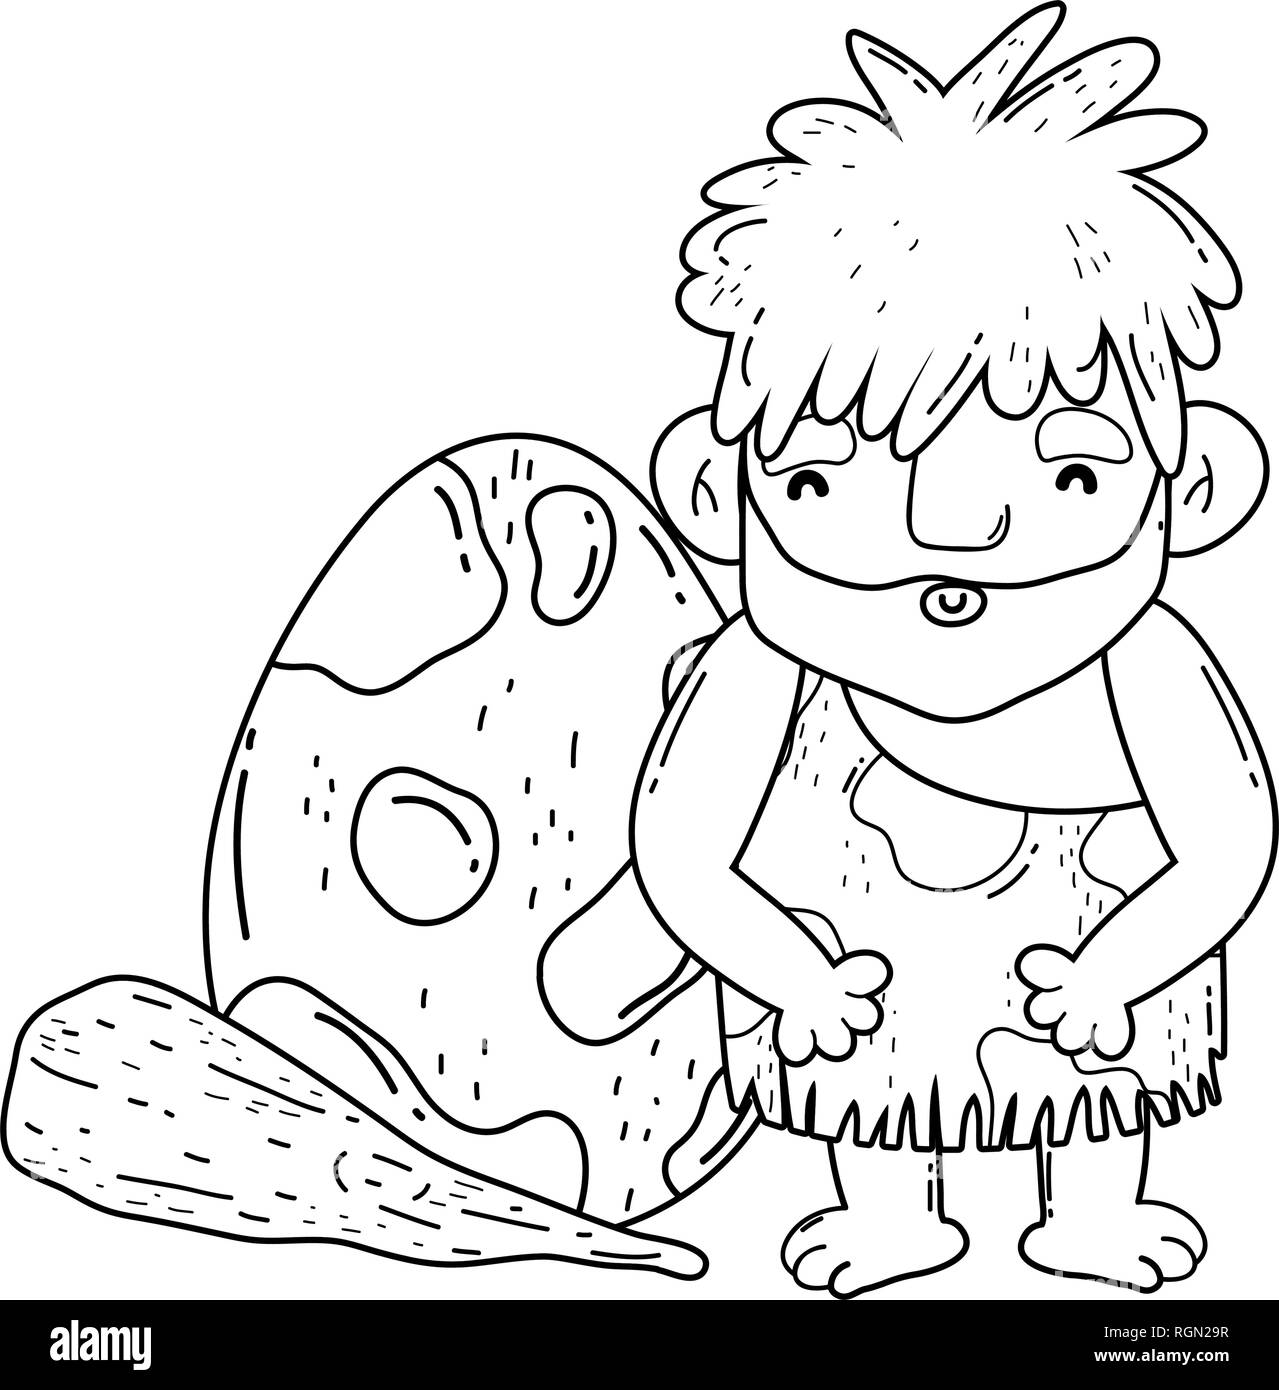 caveman with bludgeon and dinosaur egg - Stock Image